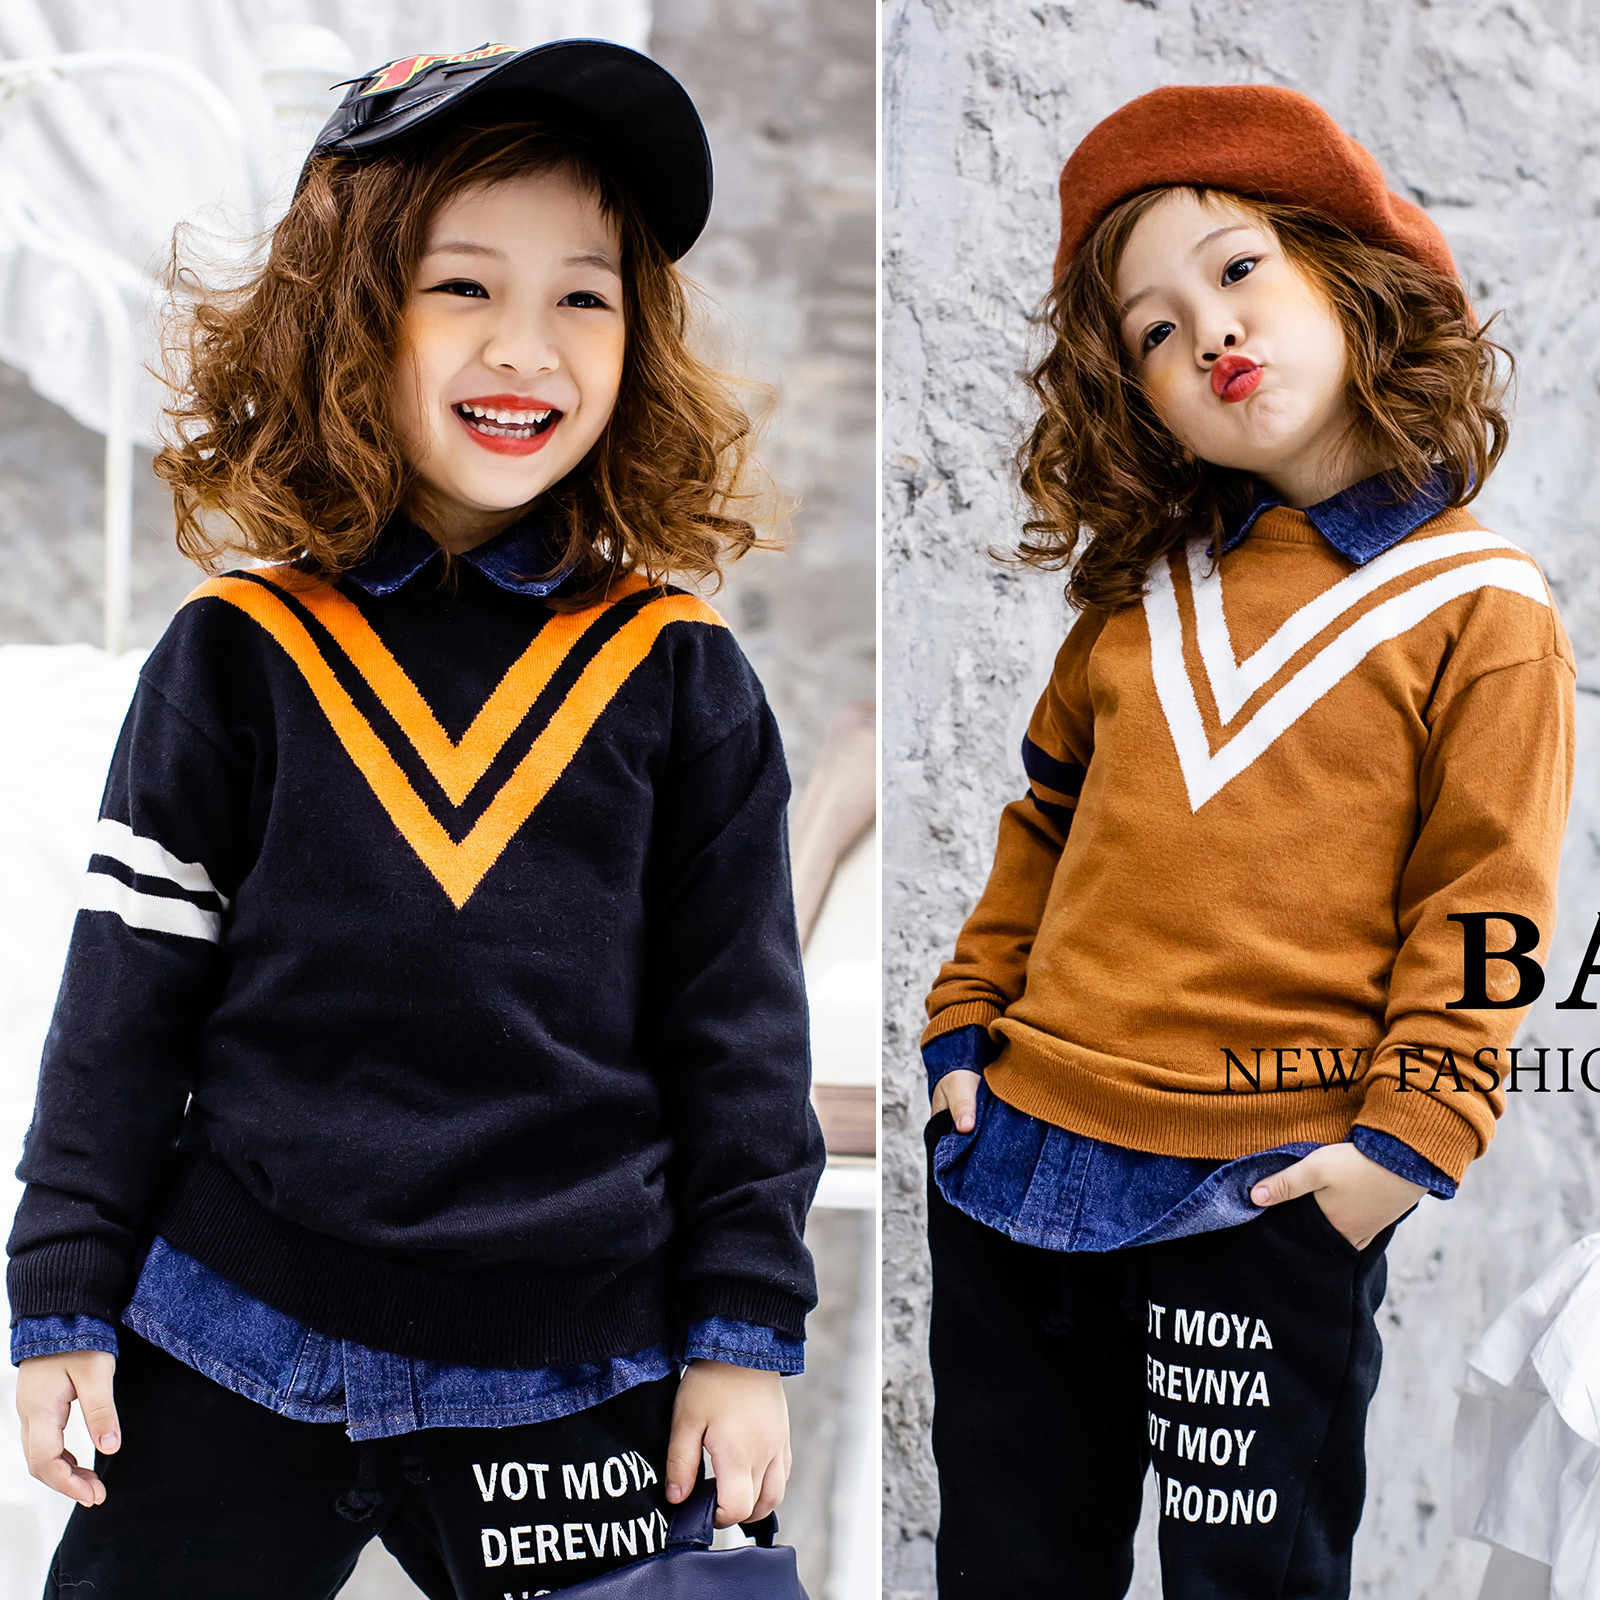 664eb0582 Details about Baby Boy Girl Warm Soft Sweater Infant Kids Knitted Tops  Sweaters Winter Clothes